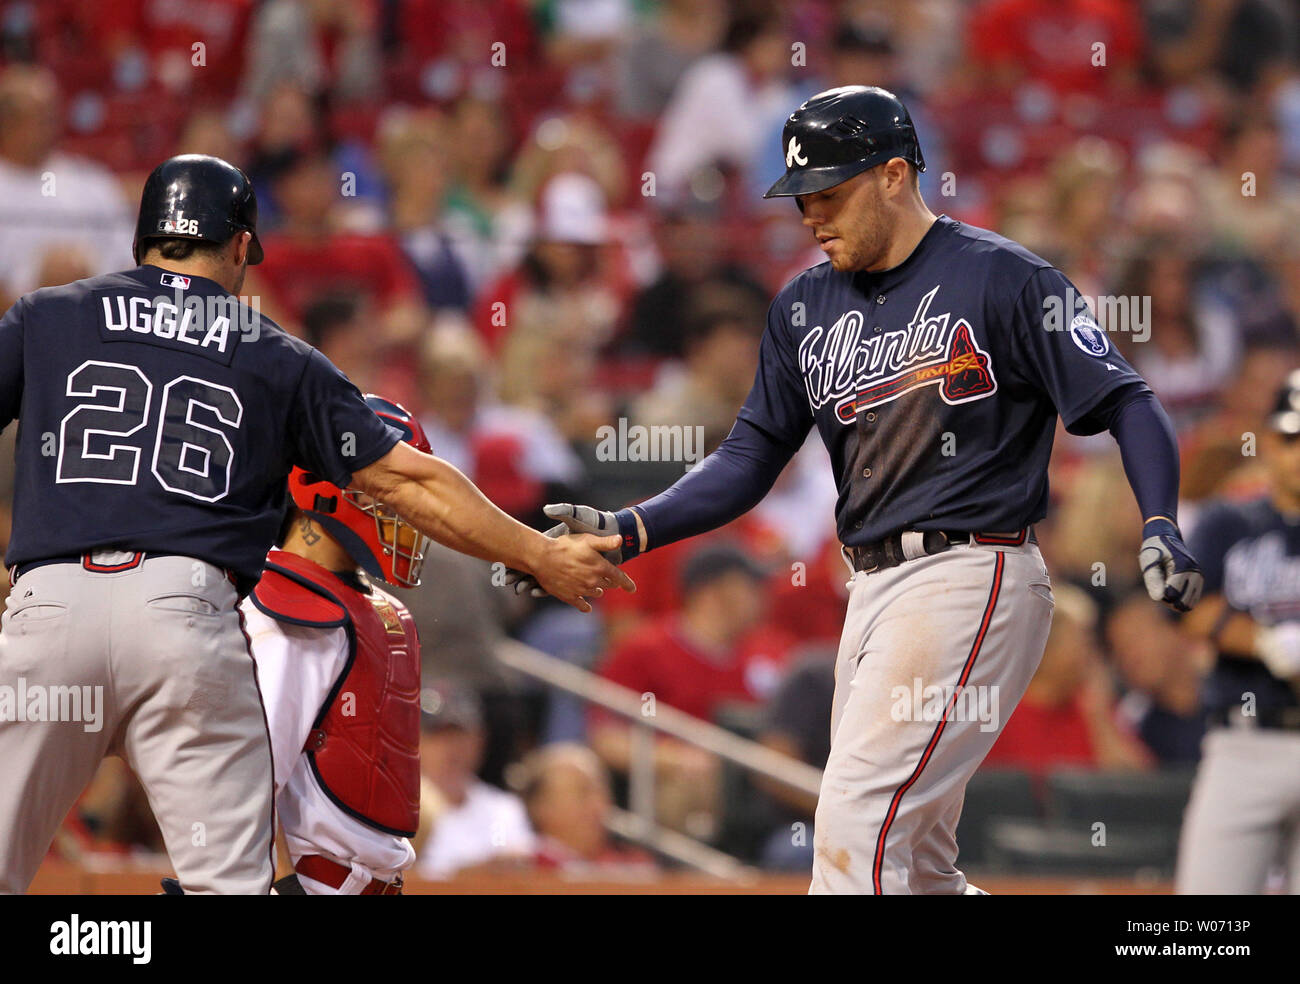 Atlanta Braves Freddie Freeman is congratulated at home plate by Dan Uggla after hitting a two run home run in the fourth inning against the St. Louis Cardinals at Busch Stadium in St. Louis  on September 10, 2011.  UPI/Bill Greenblatt Stock Photo